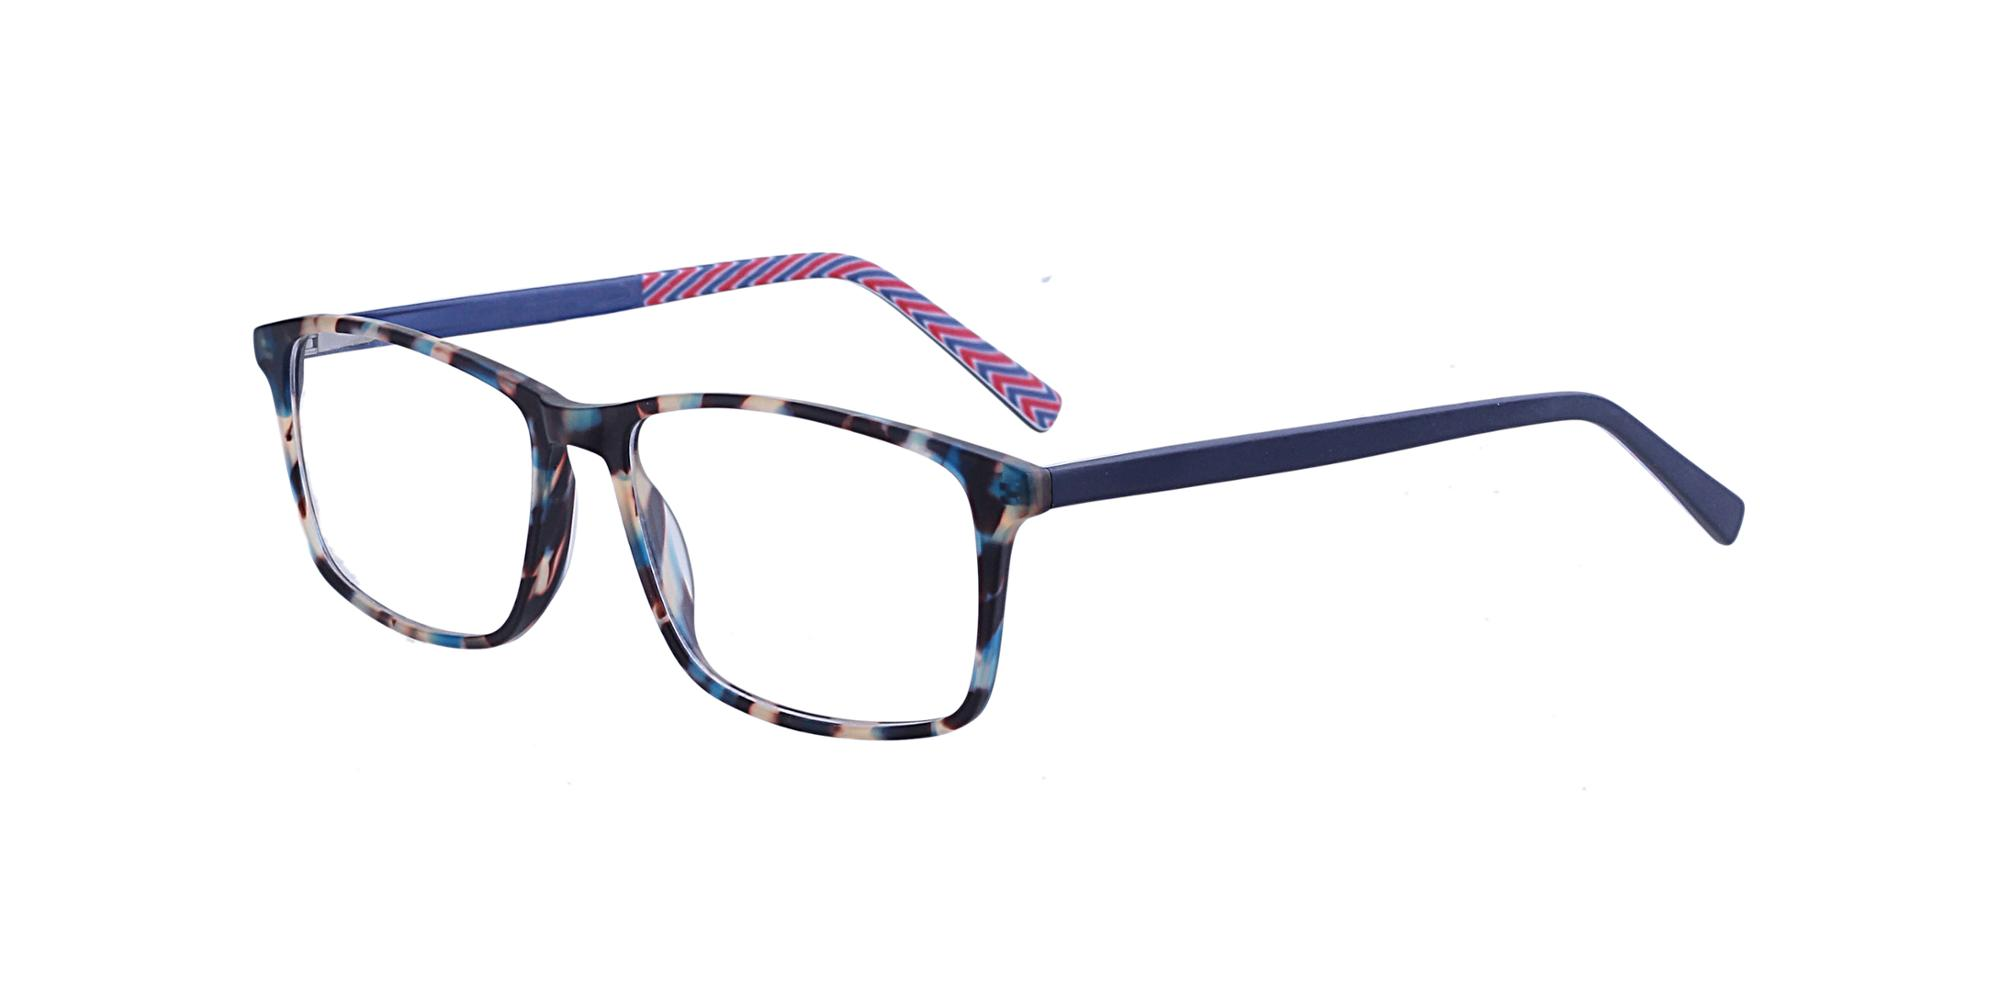 2018 new year glasses colorful fashion acetate ultem optical frames ready goods eyeglasses frames women